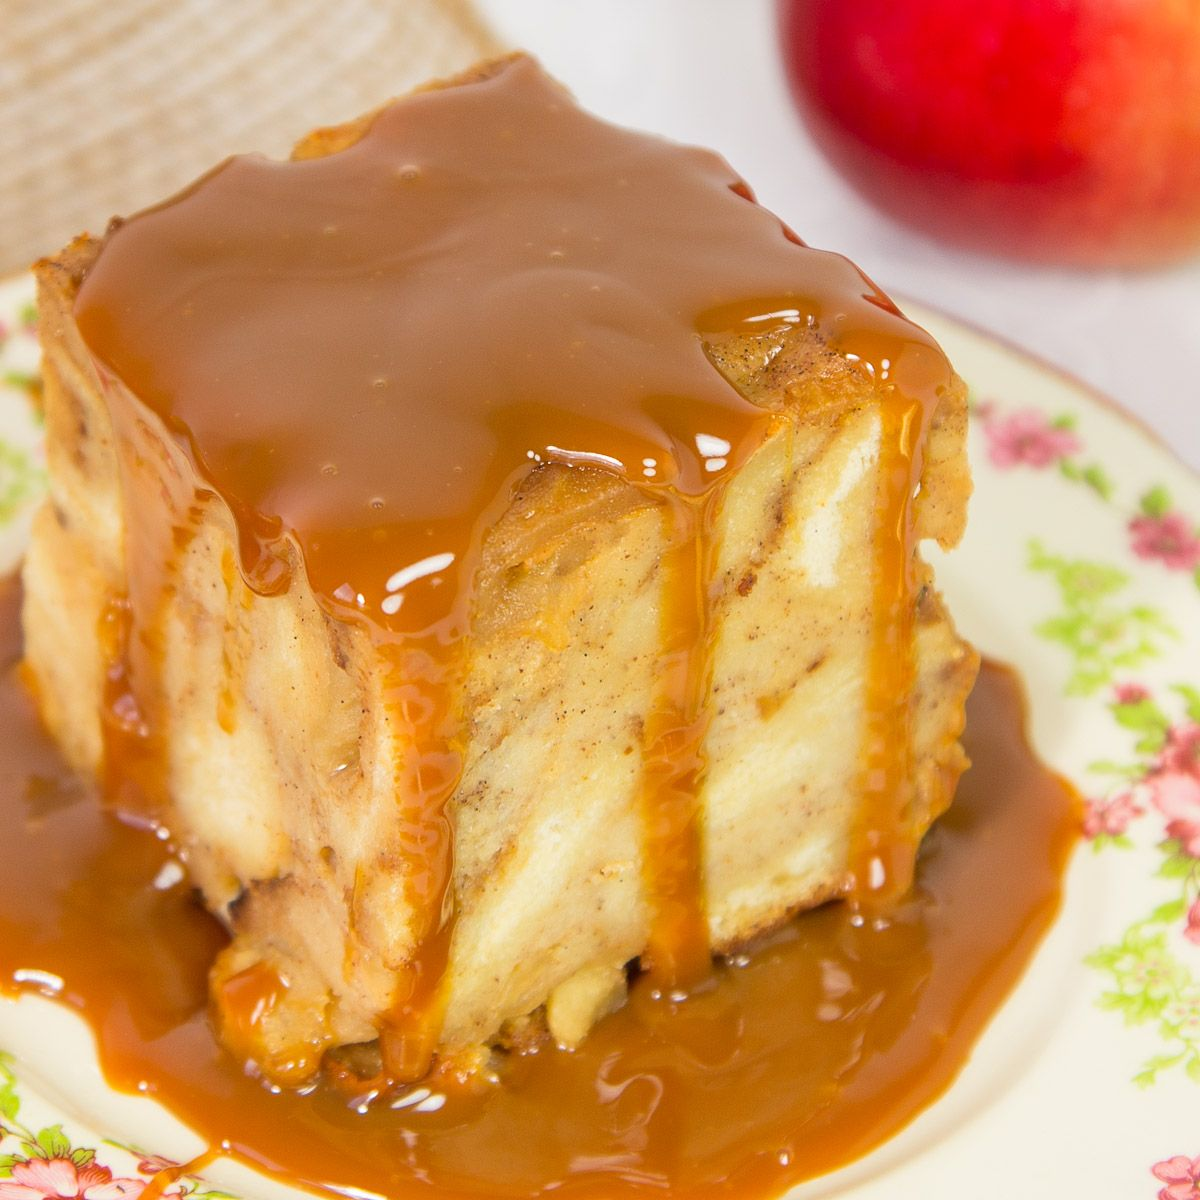 Apple Bread Pudding Crowd Brunch Sweet Bread Pudding Bread Pudding With Apples Apple Recipes